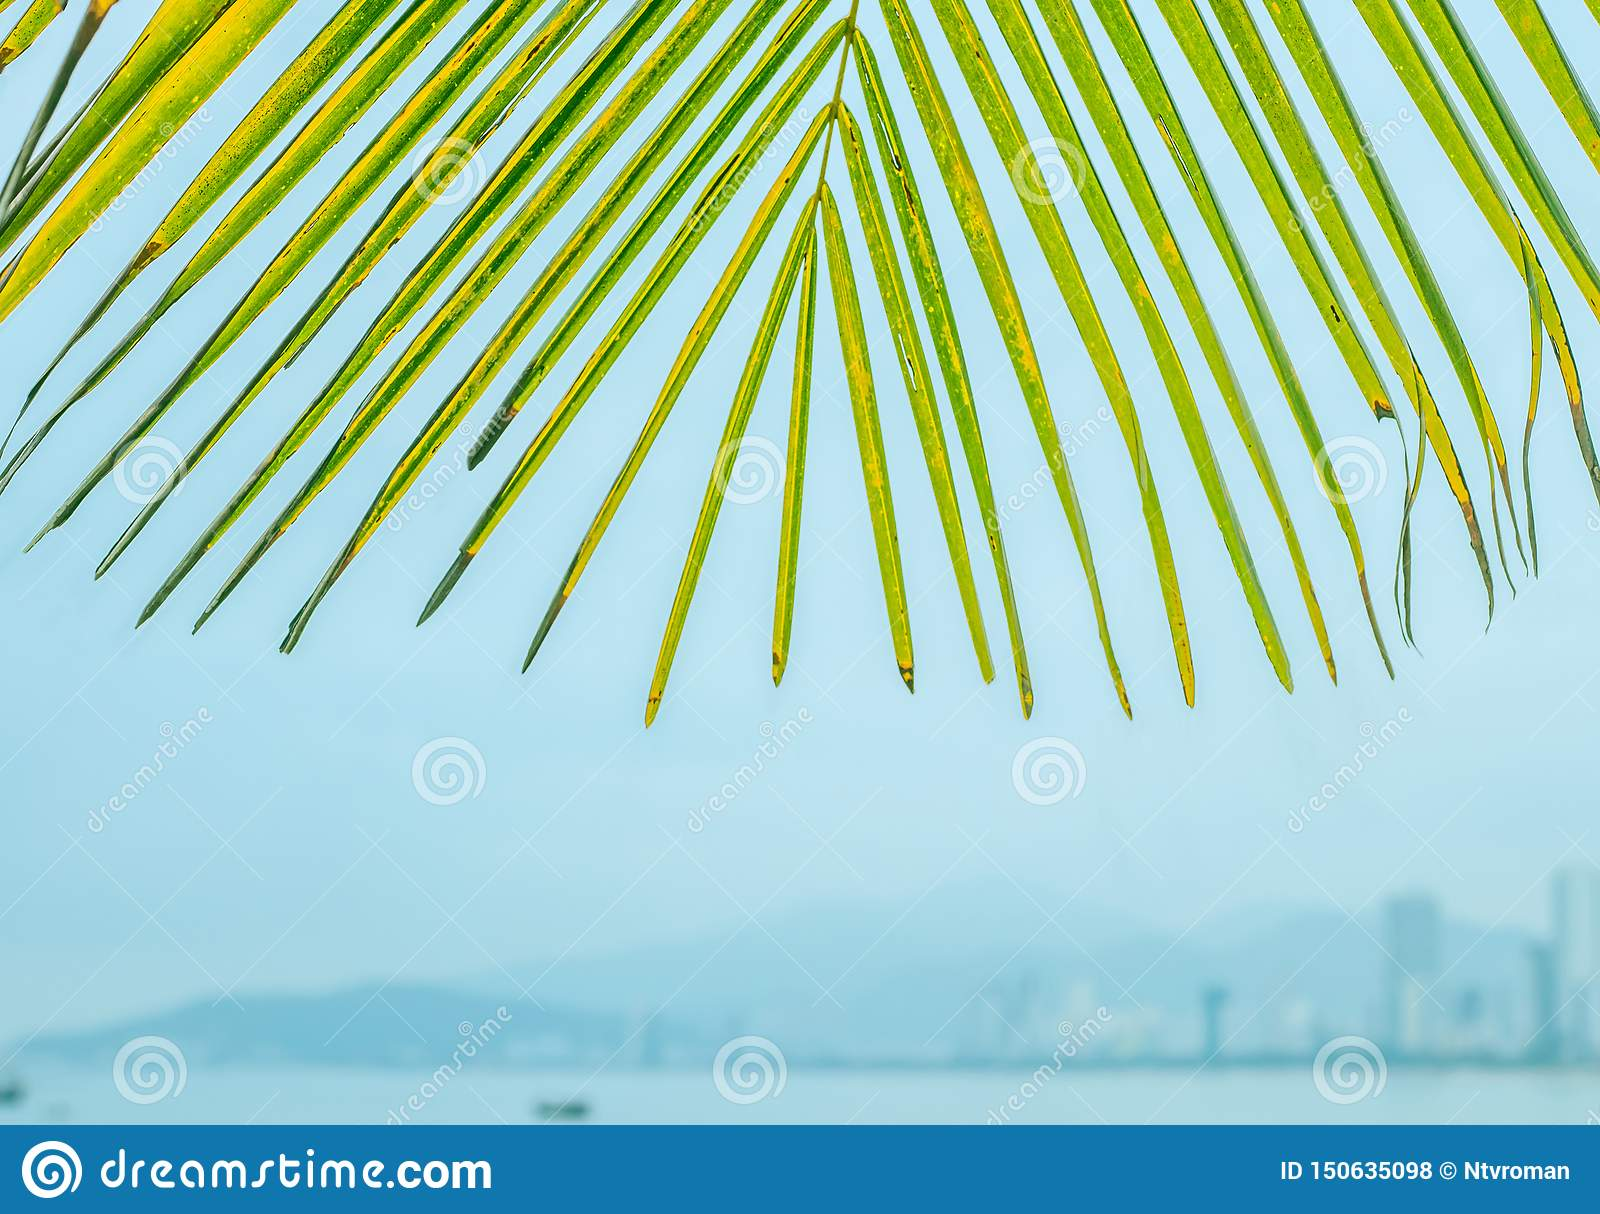 Palm leaves against the background of the city